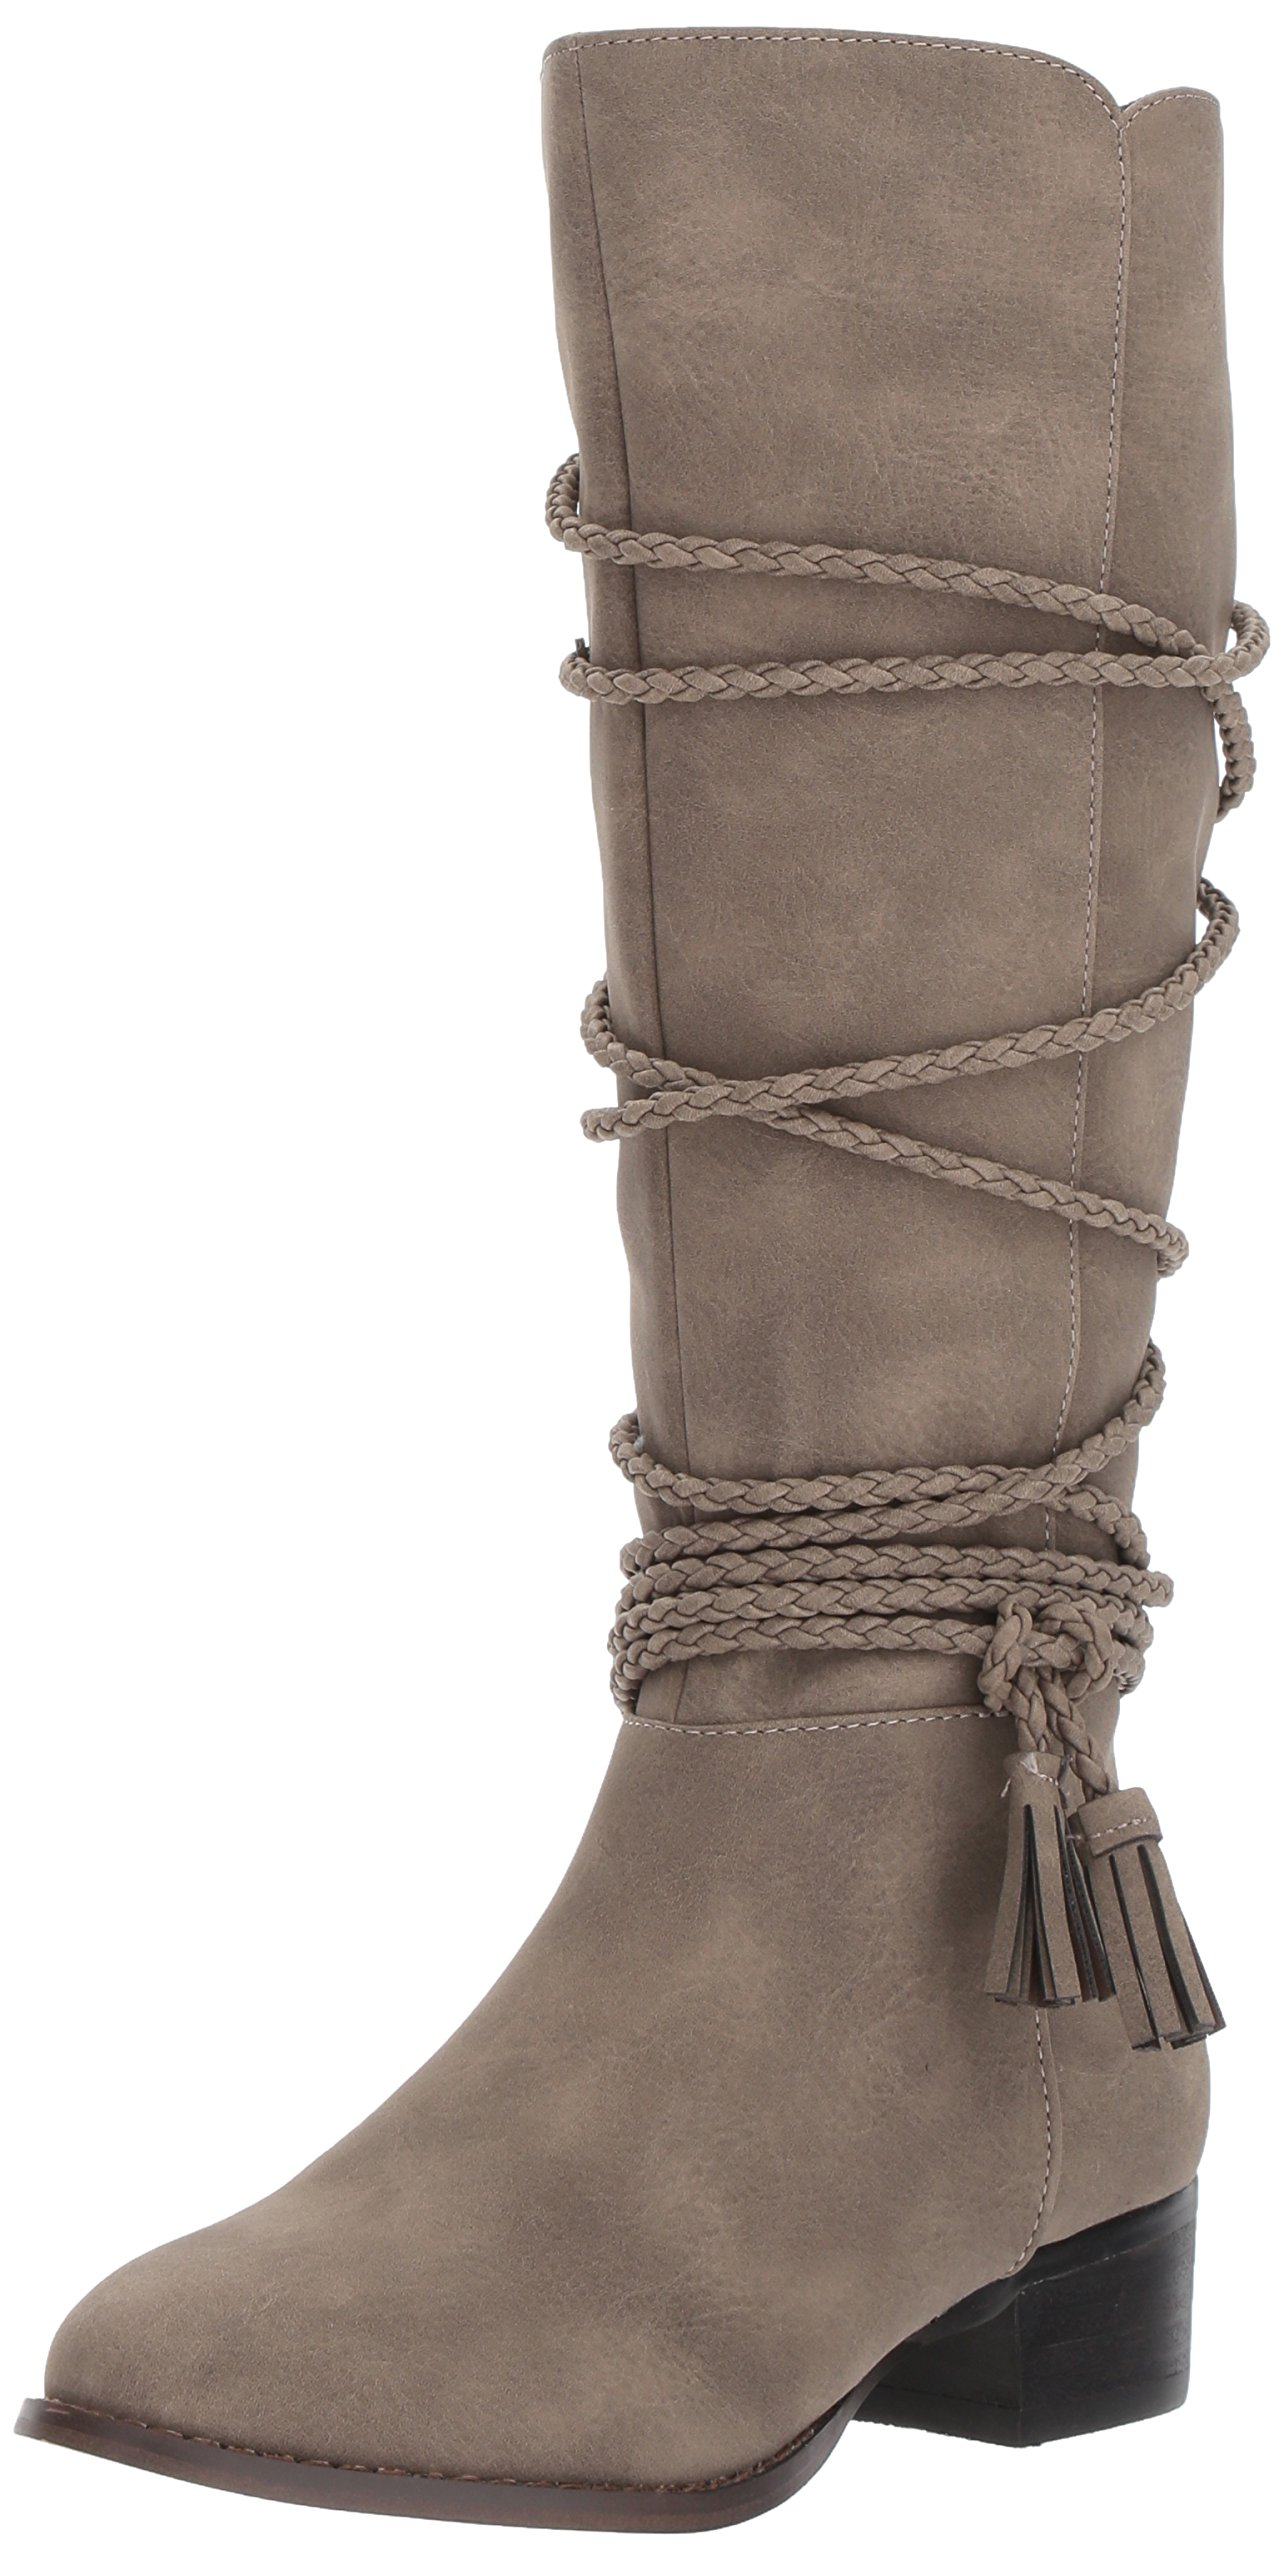 Steve Madden Girls' JCHALLY Fashion Boot, Taupe, 5 M US Little Kid